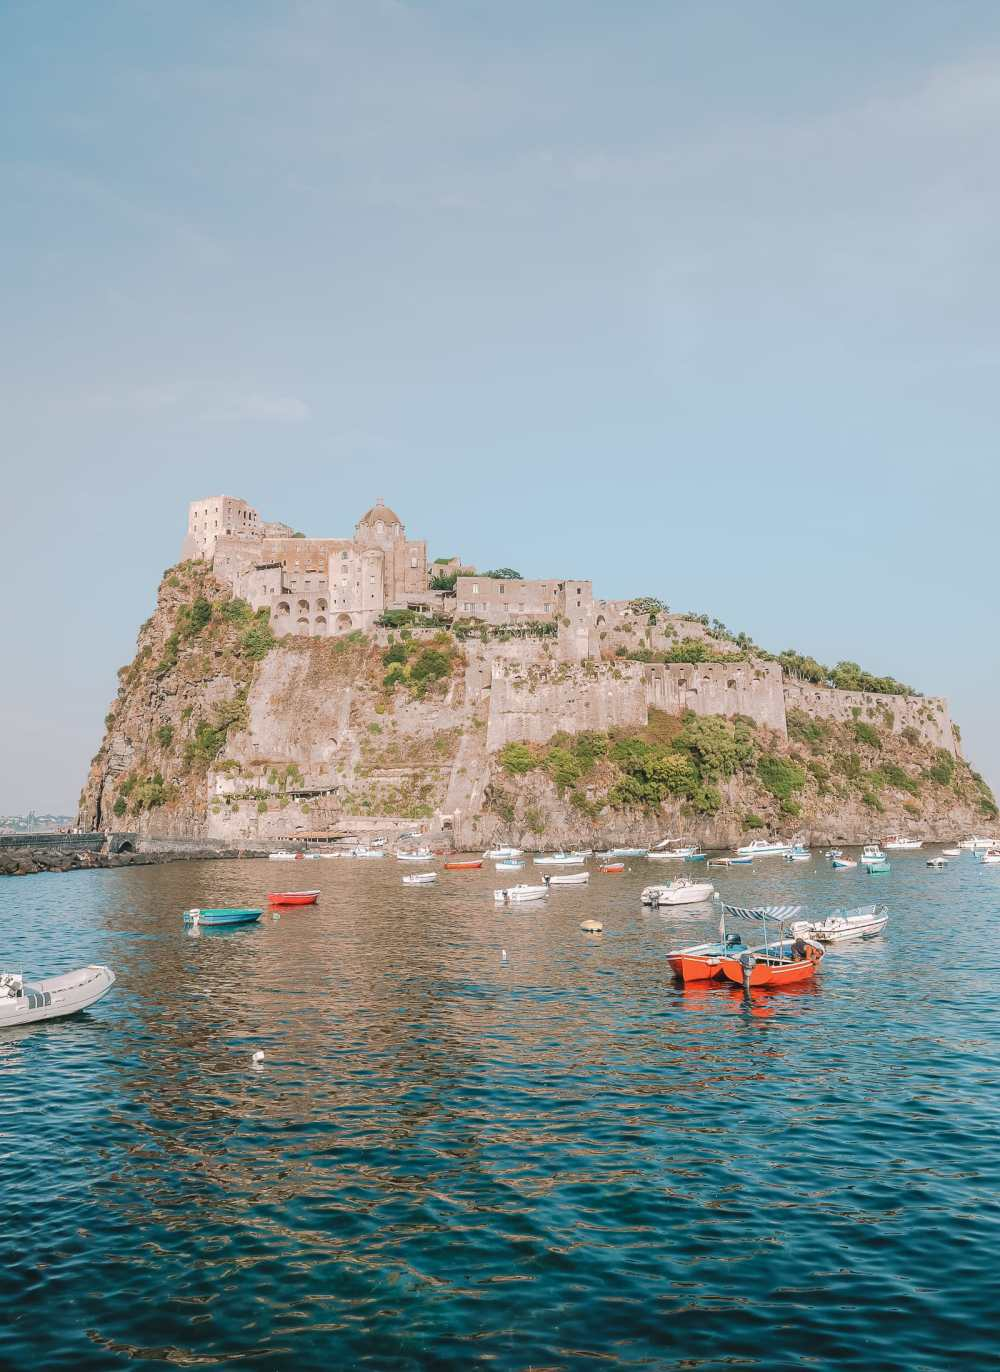 10 Very Best Castles In Italy To Visit (6)